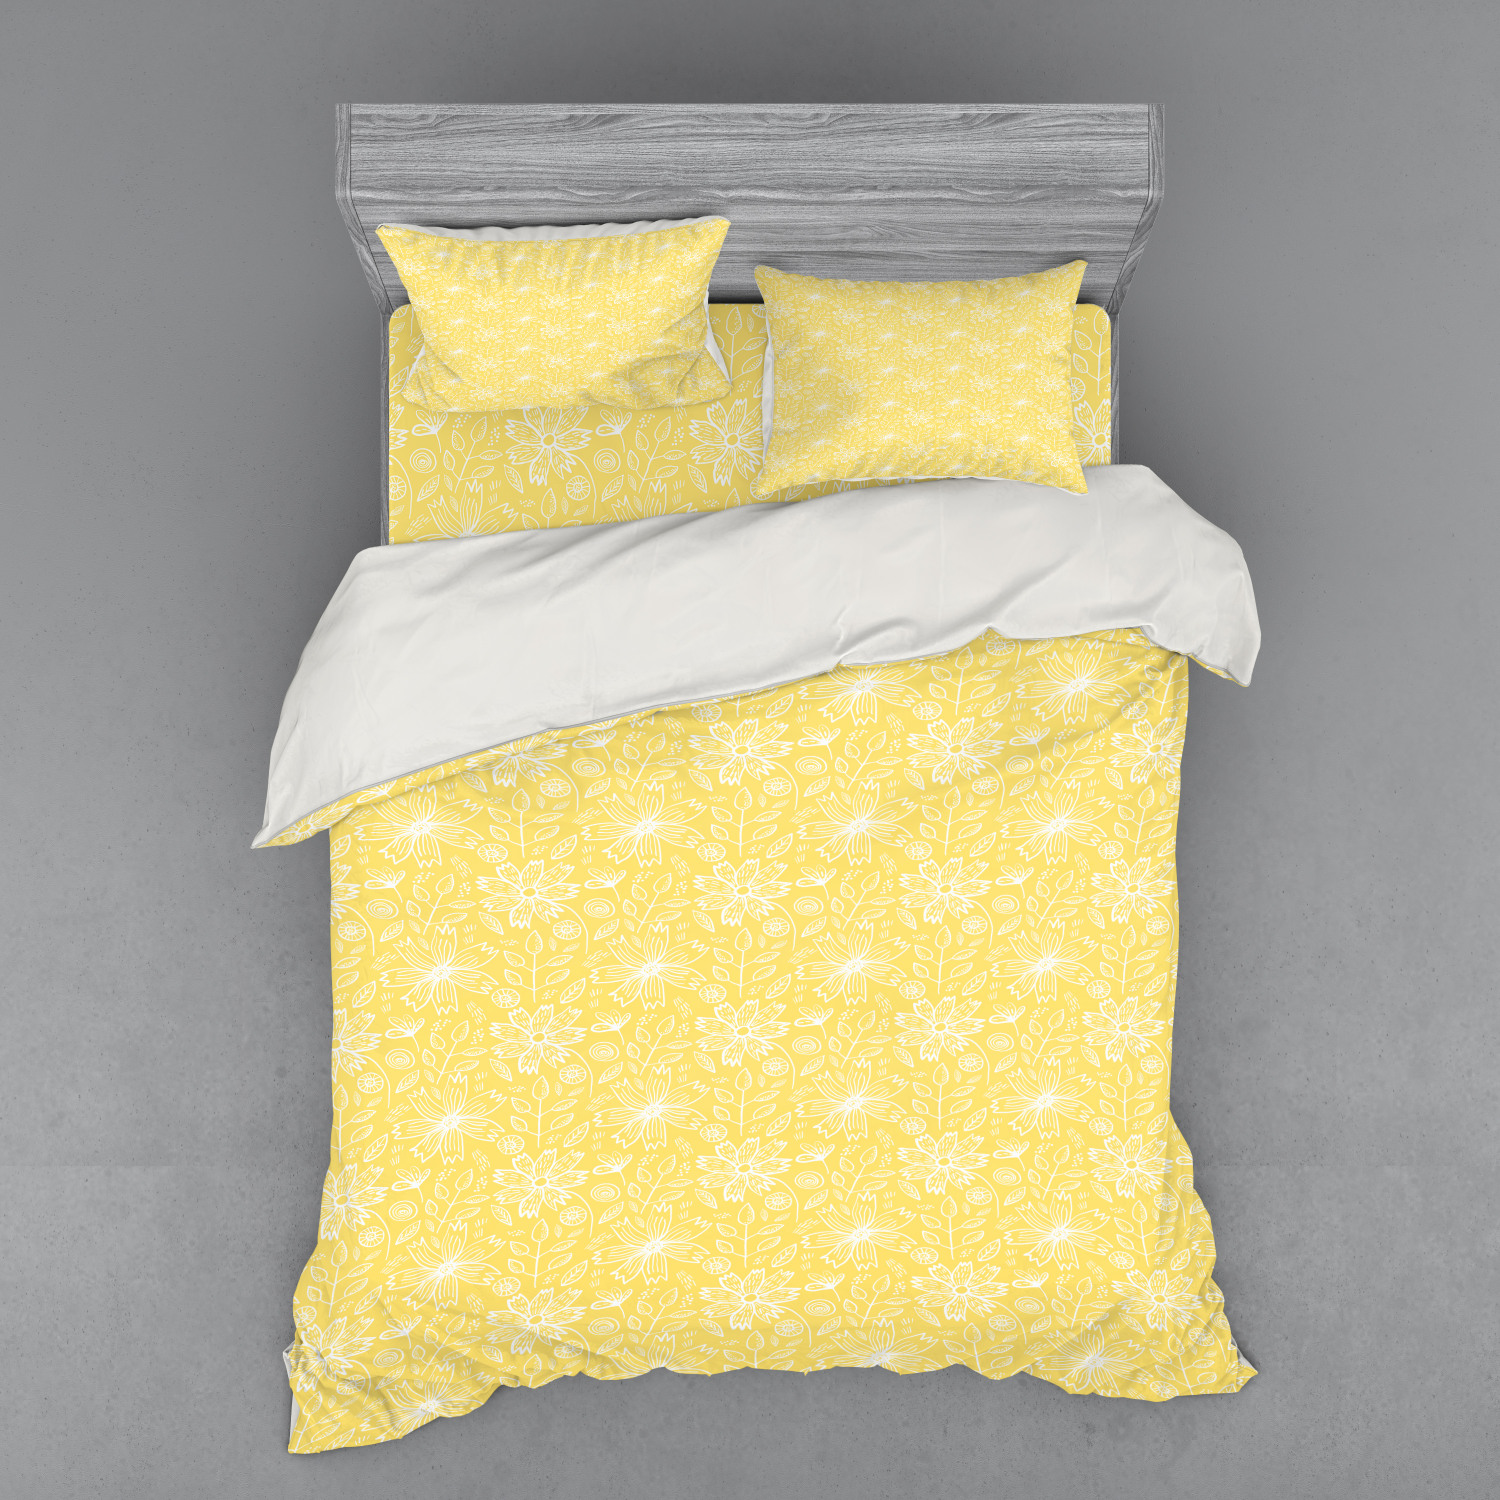 thumbnail 150 - Ambesonne Summer Bedding Set Duvet Cover Sham Fitted Sheet in 3 Sizes